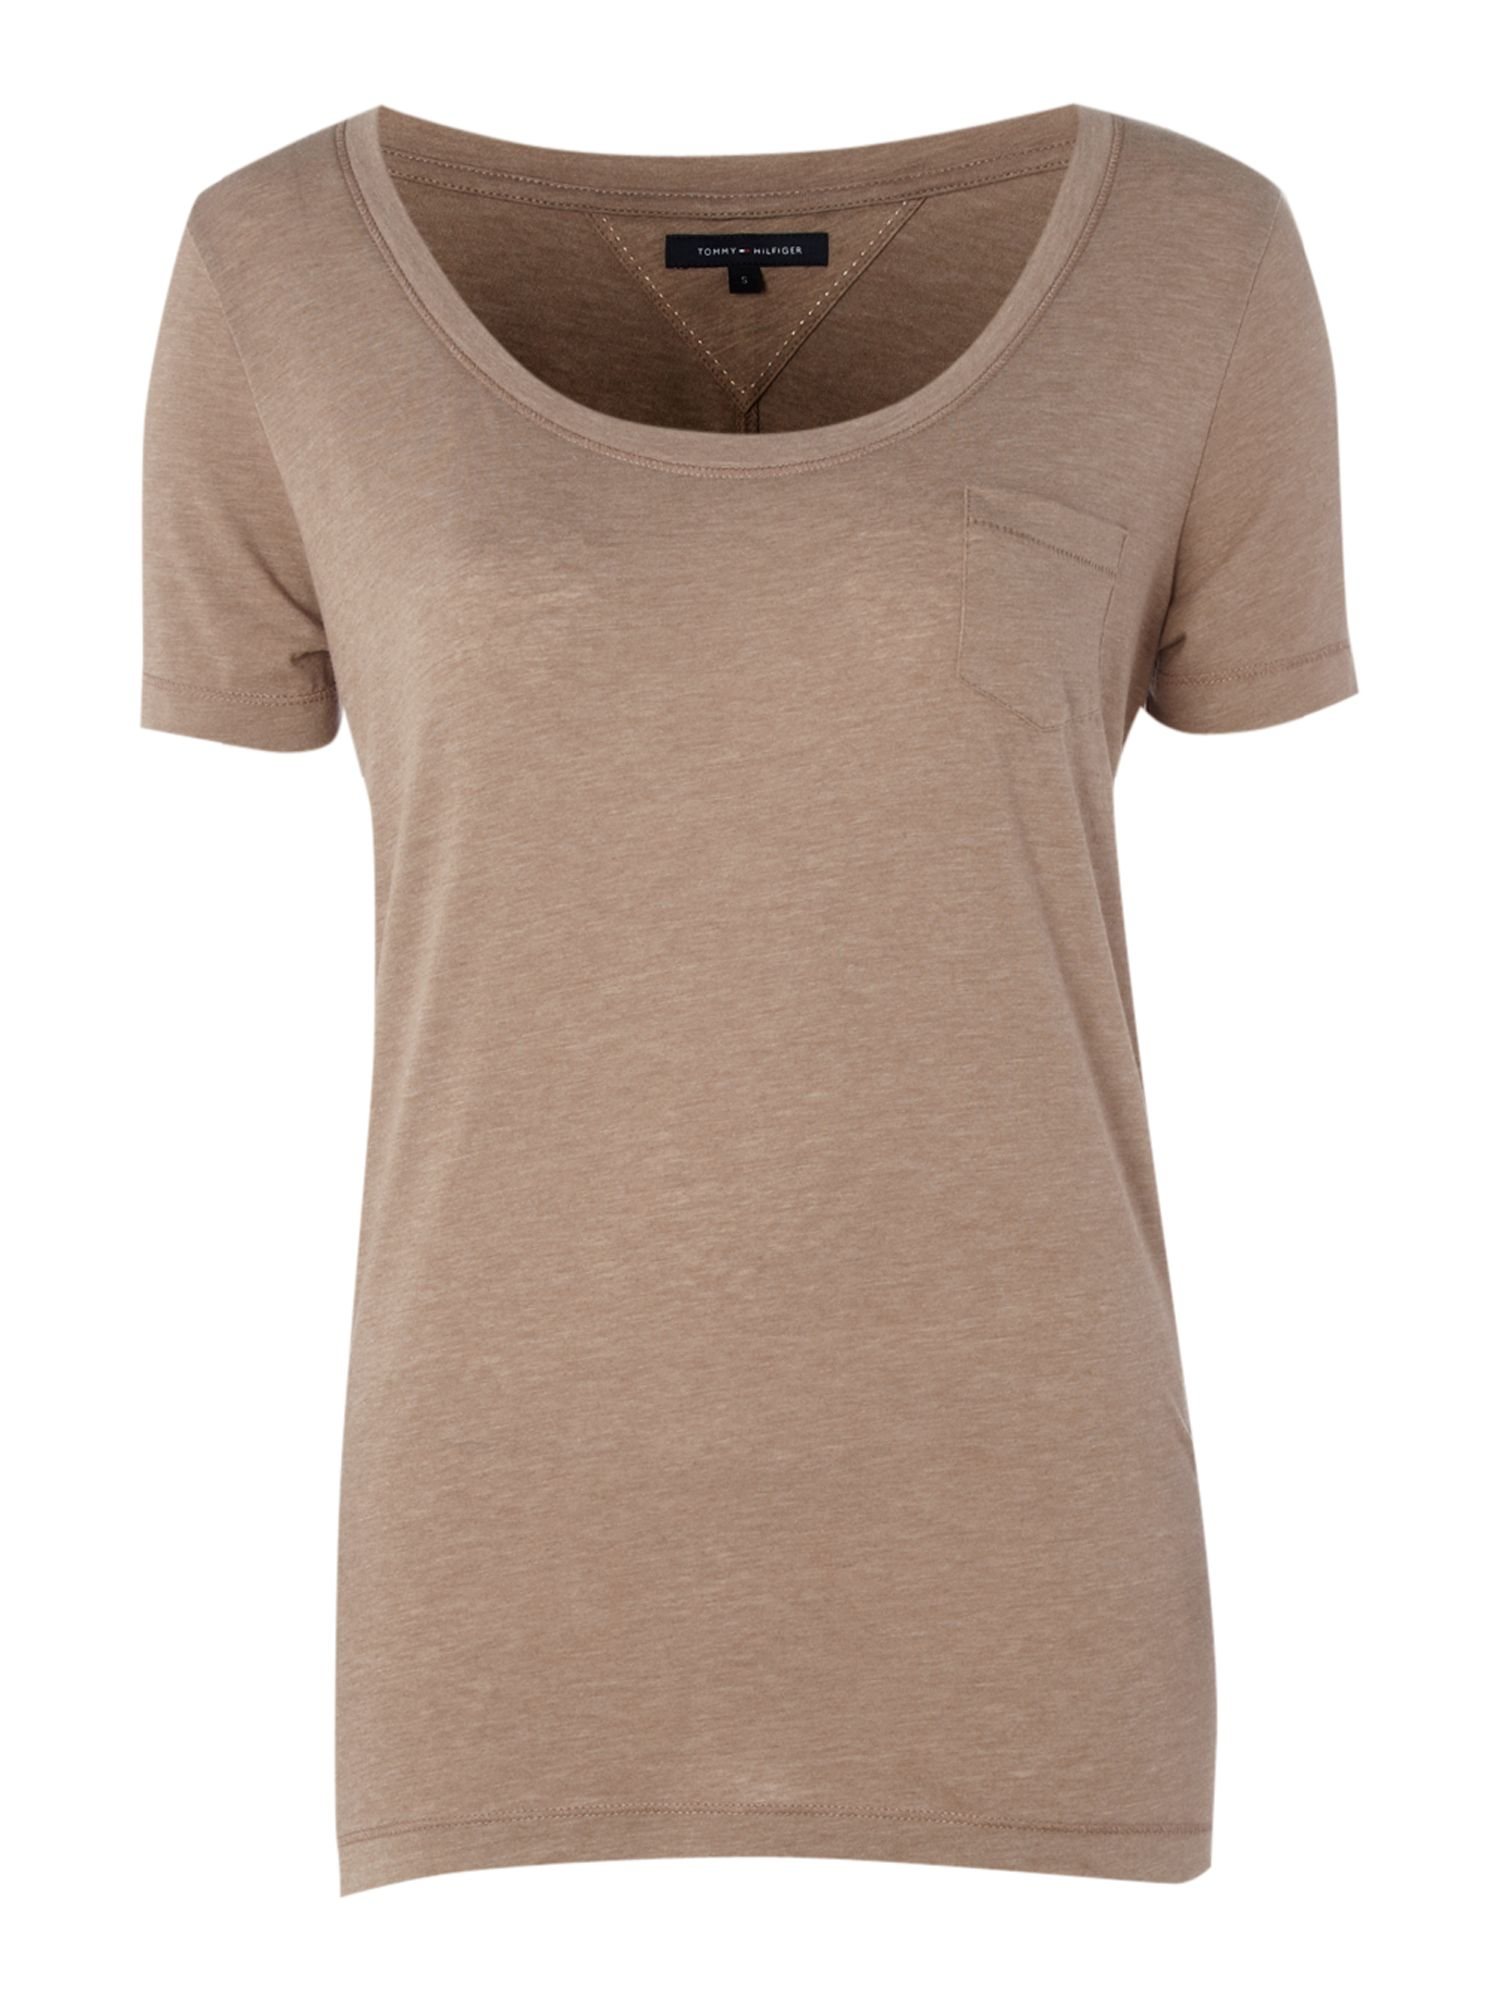 Tommy Hilfiger Luisa boyfriend t-shirt, Taupe product image